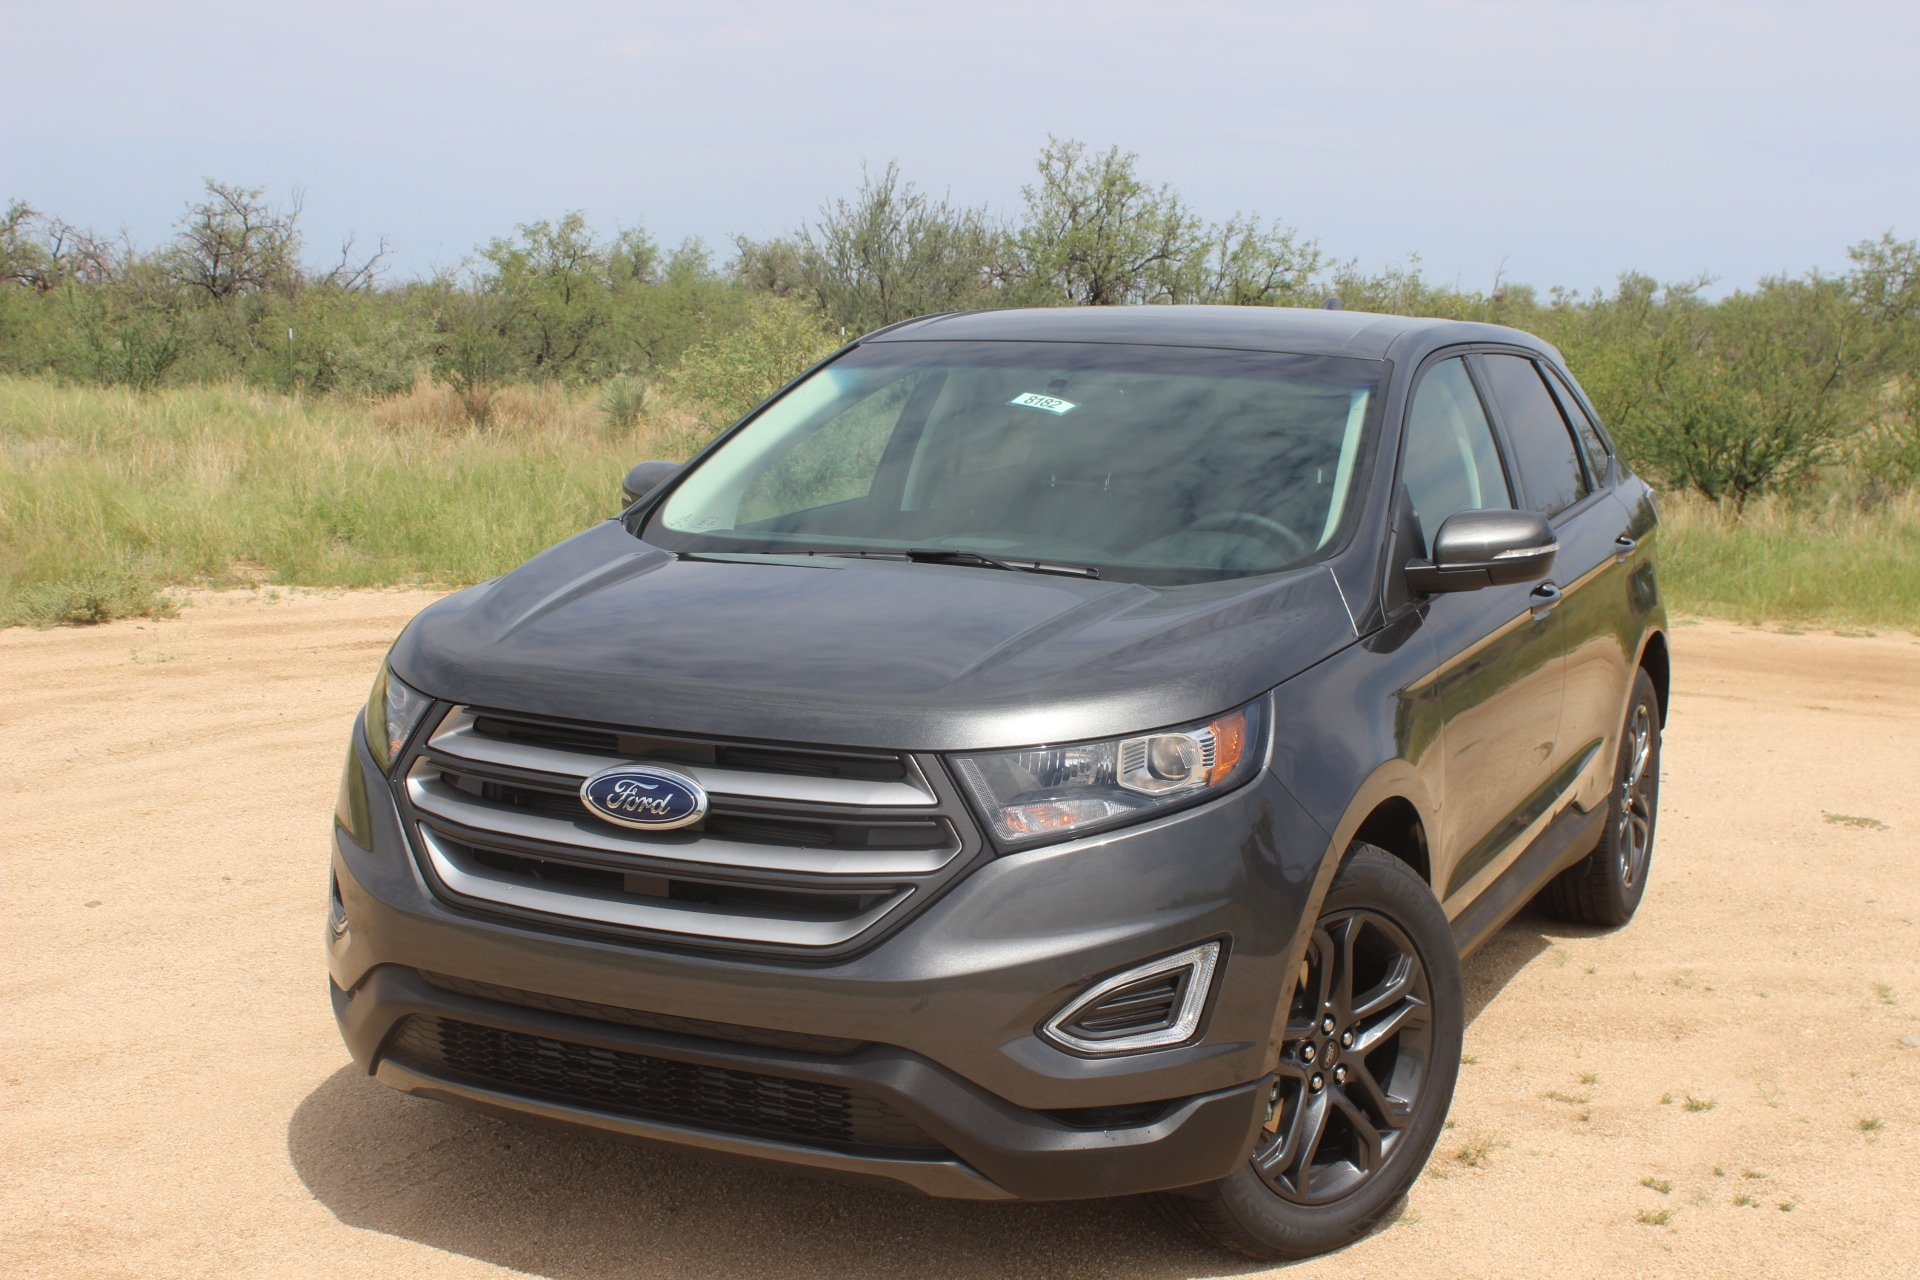 New 2018 Ford Edge SEL Crossover for sale near Tucson, AZ